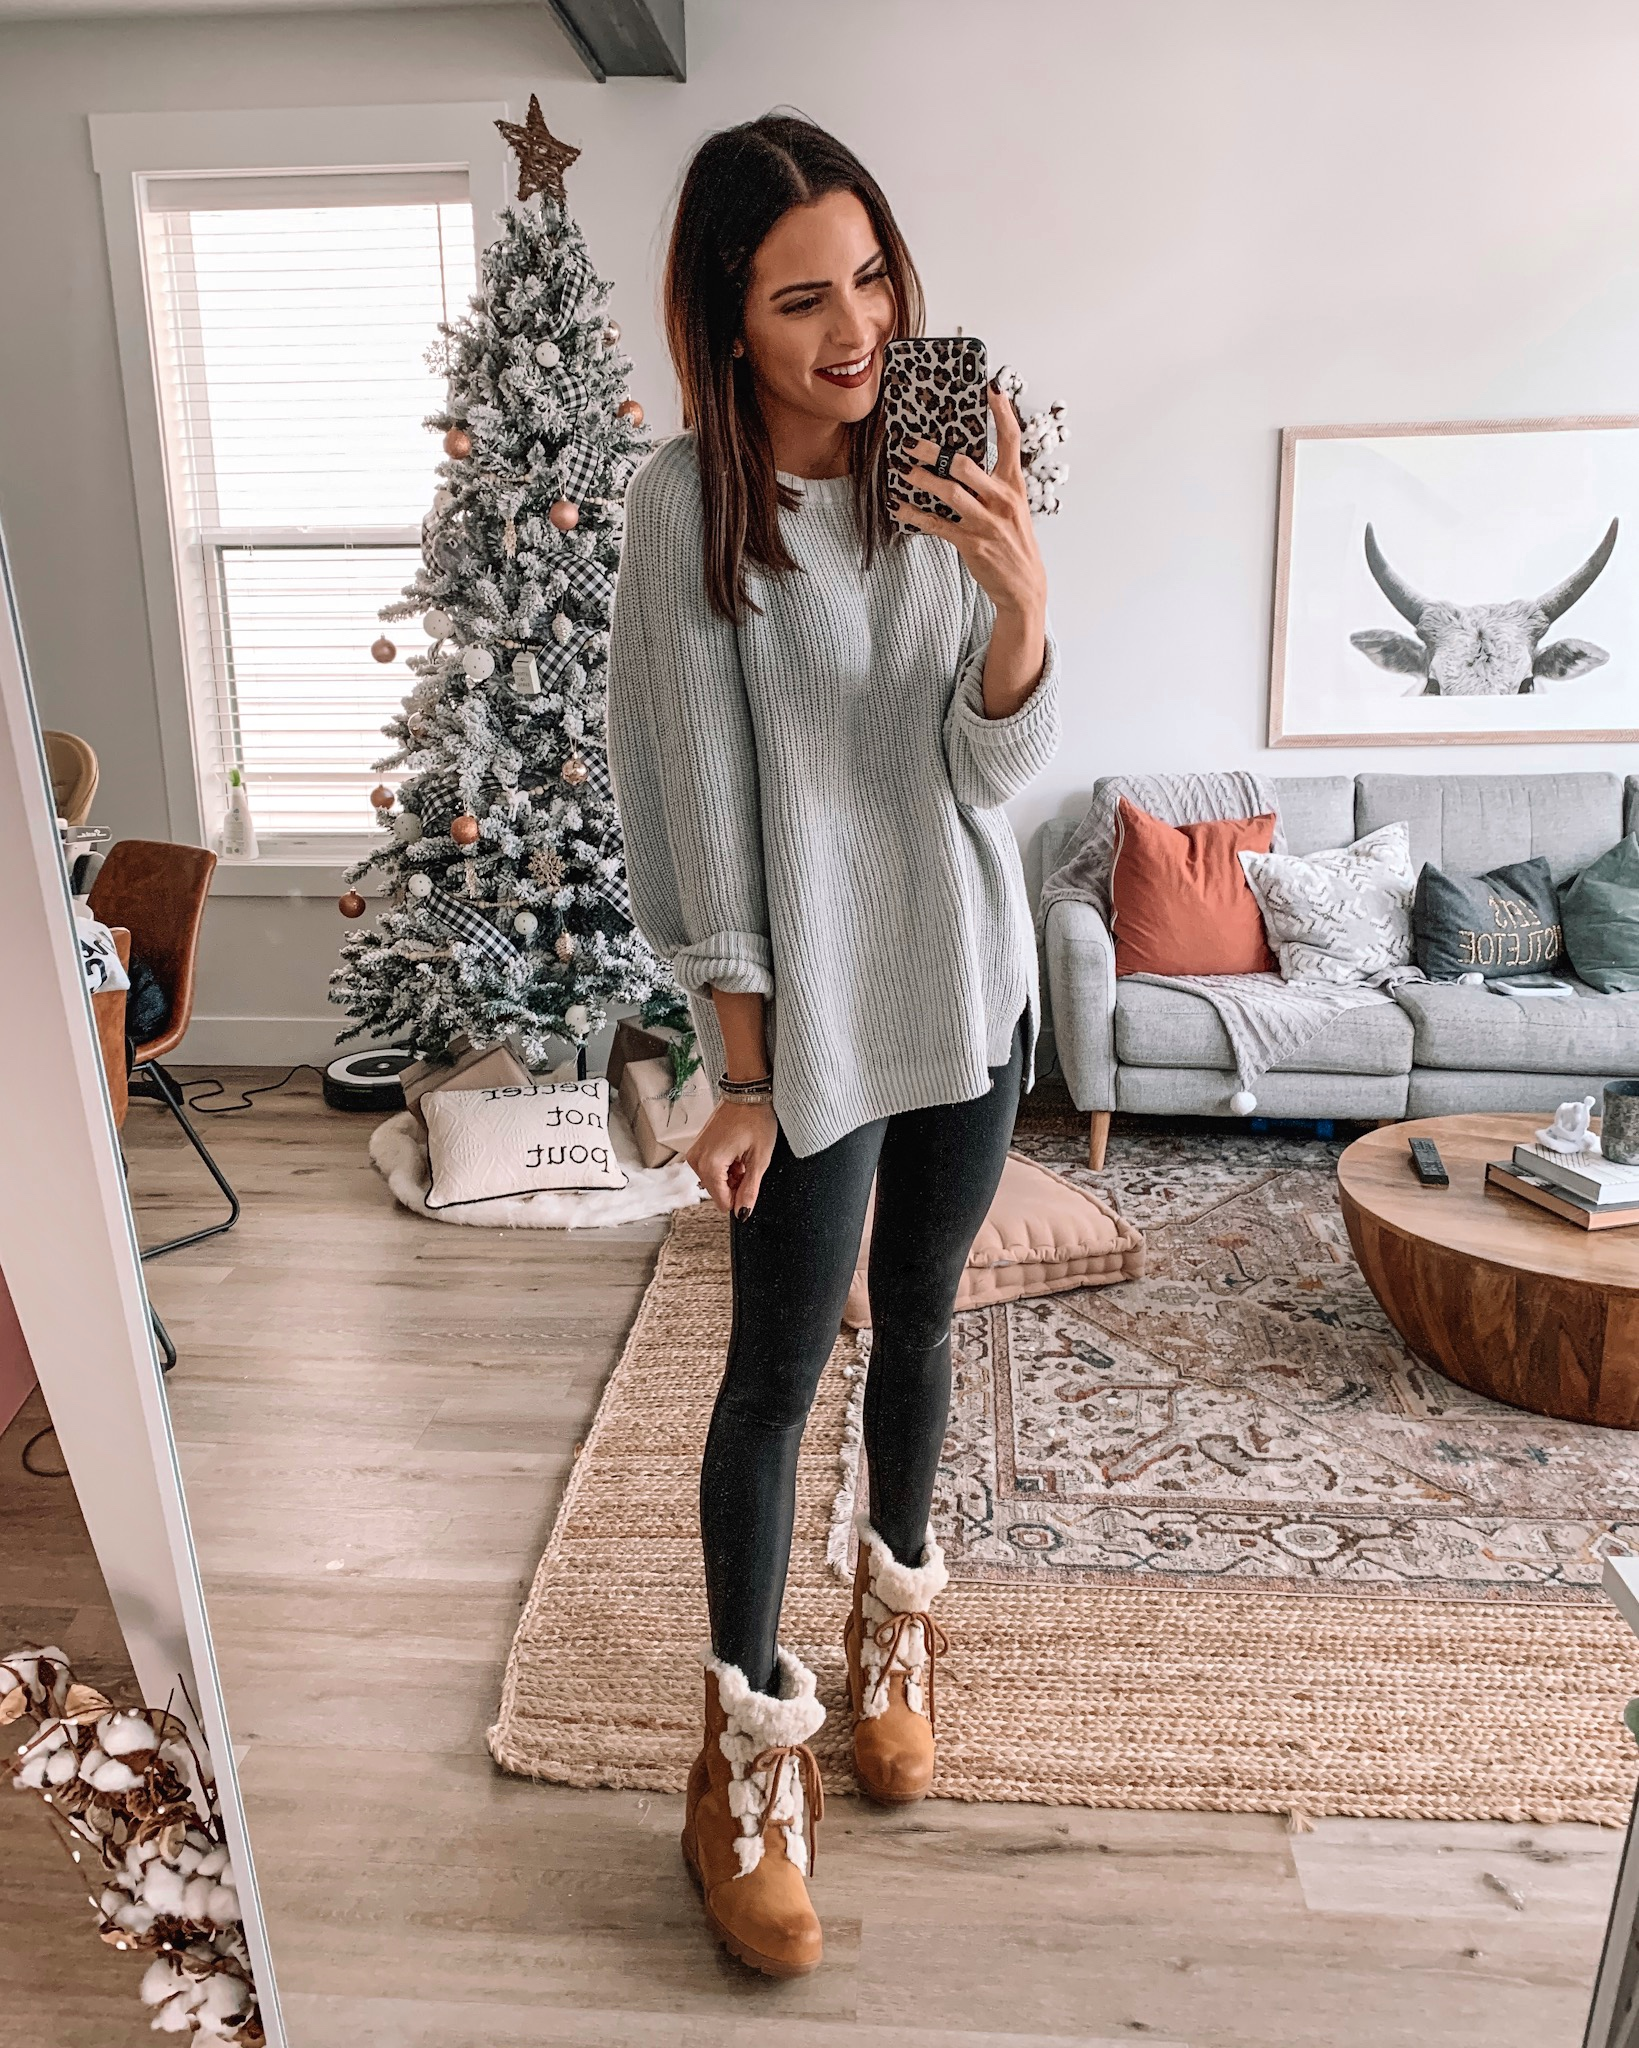 faux leather leggings outfit, express Black Friday cyber Monday sale 2019. tunic sweater, affordable fashion, winter fashion, holiday outfit, Minneapolis blogger